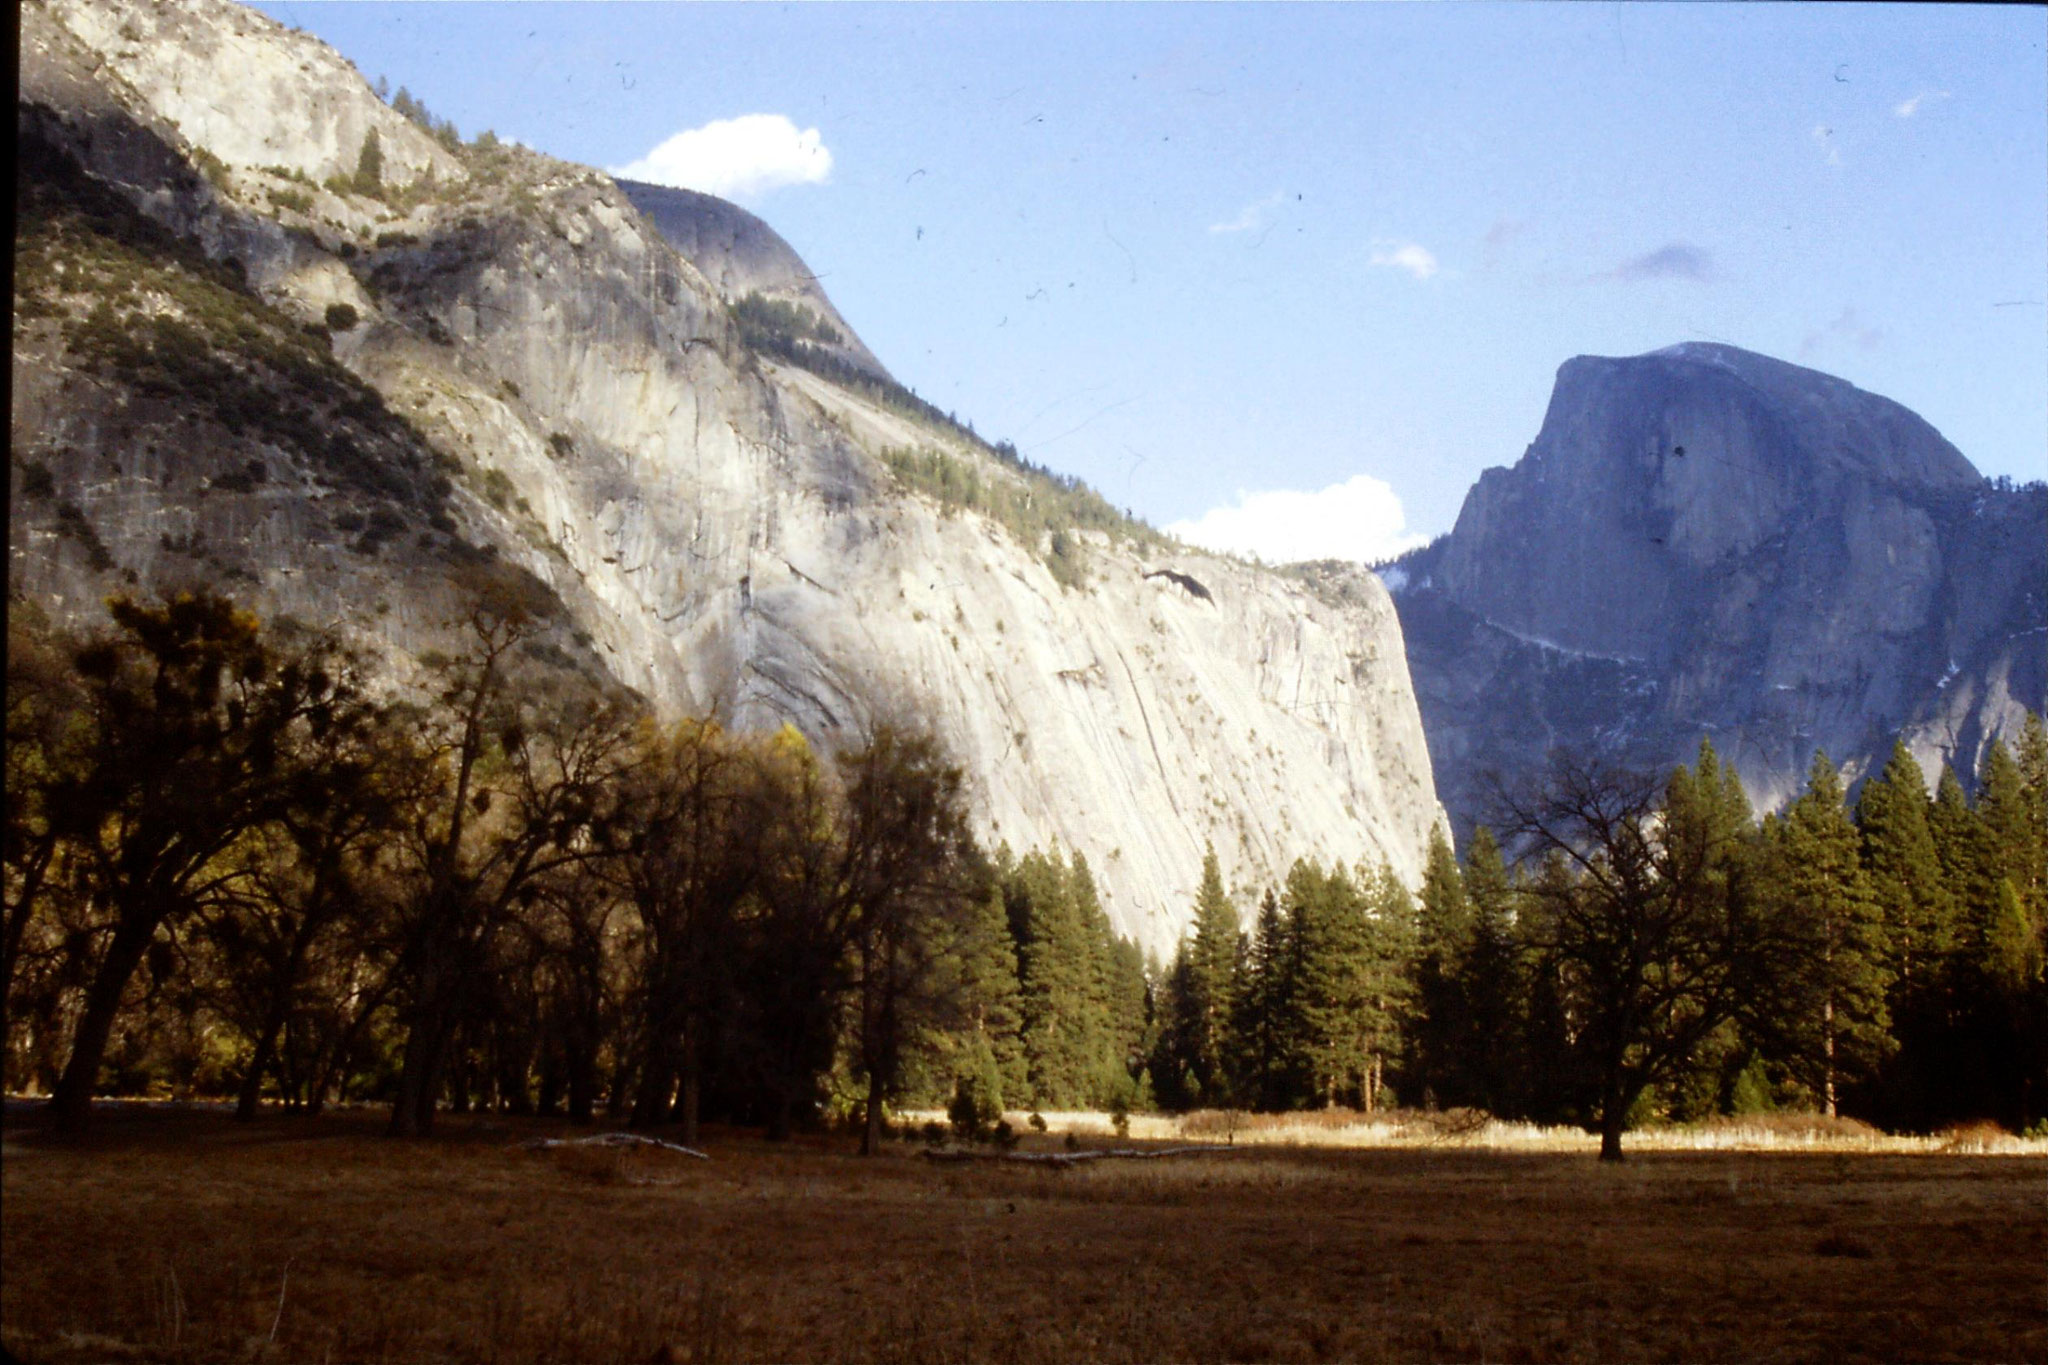 16/2/1991: 22: Yosemite valley